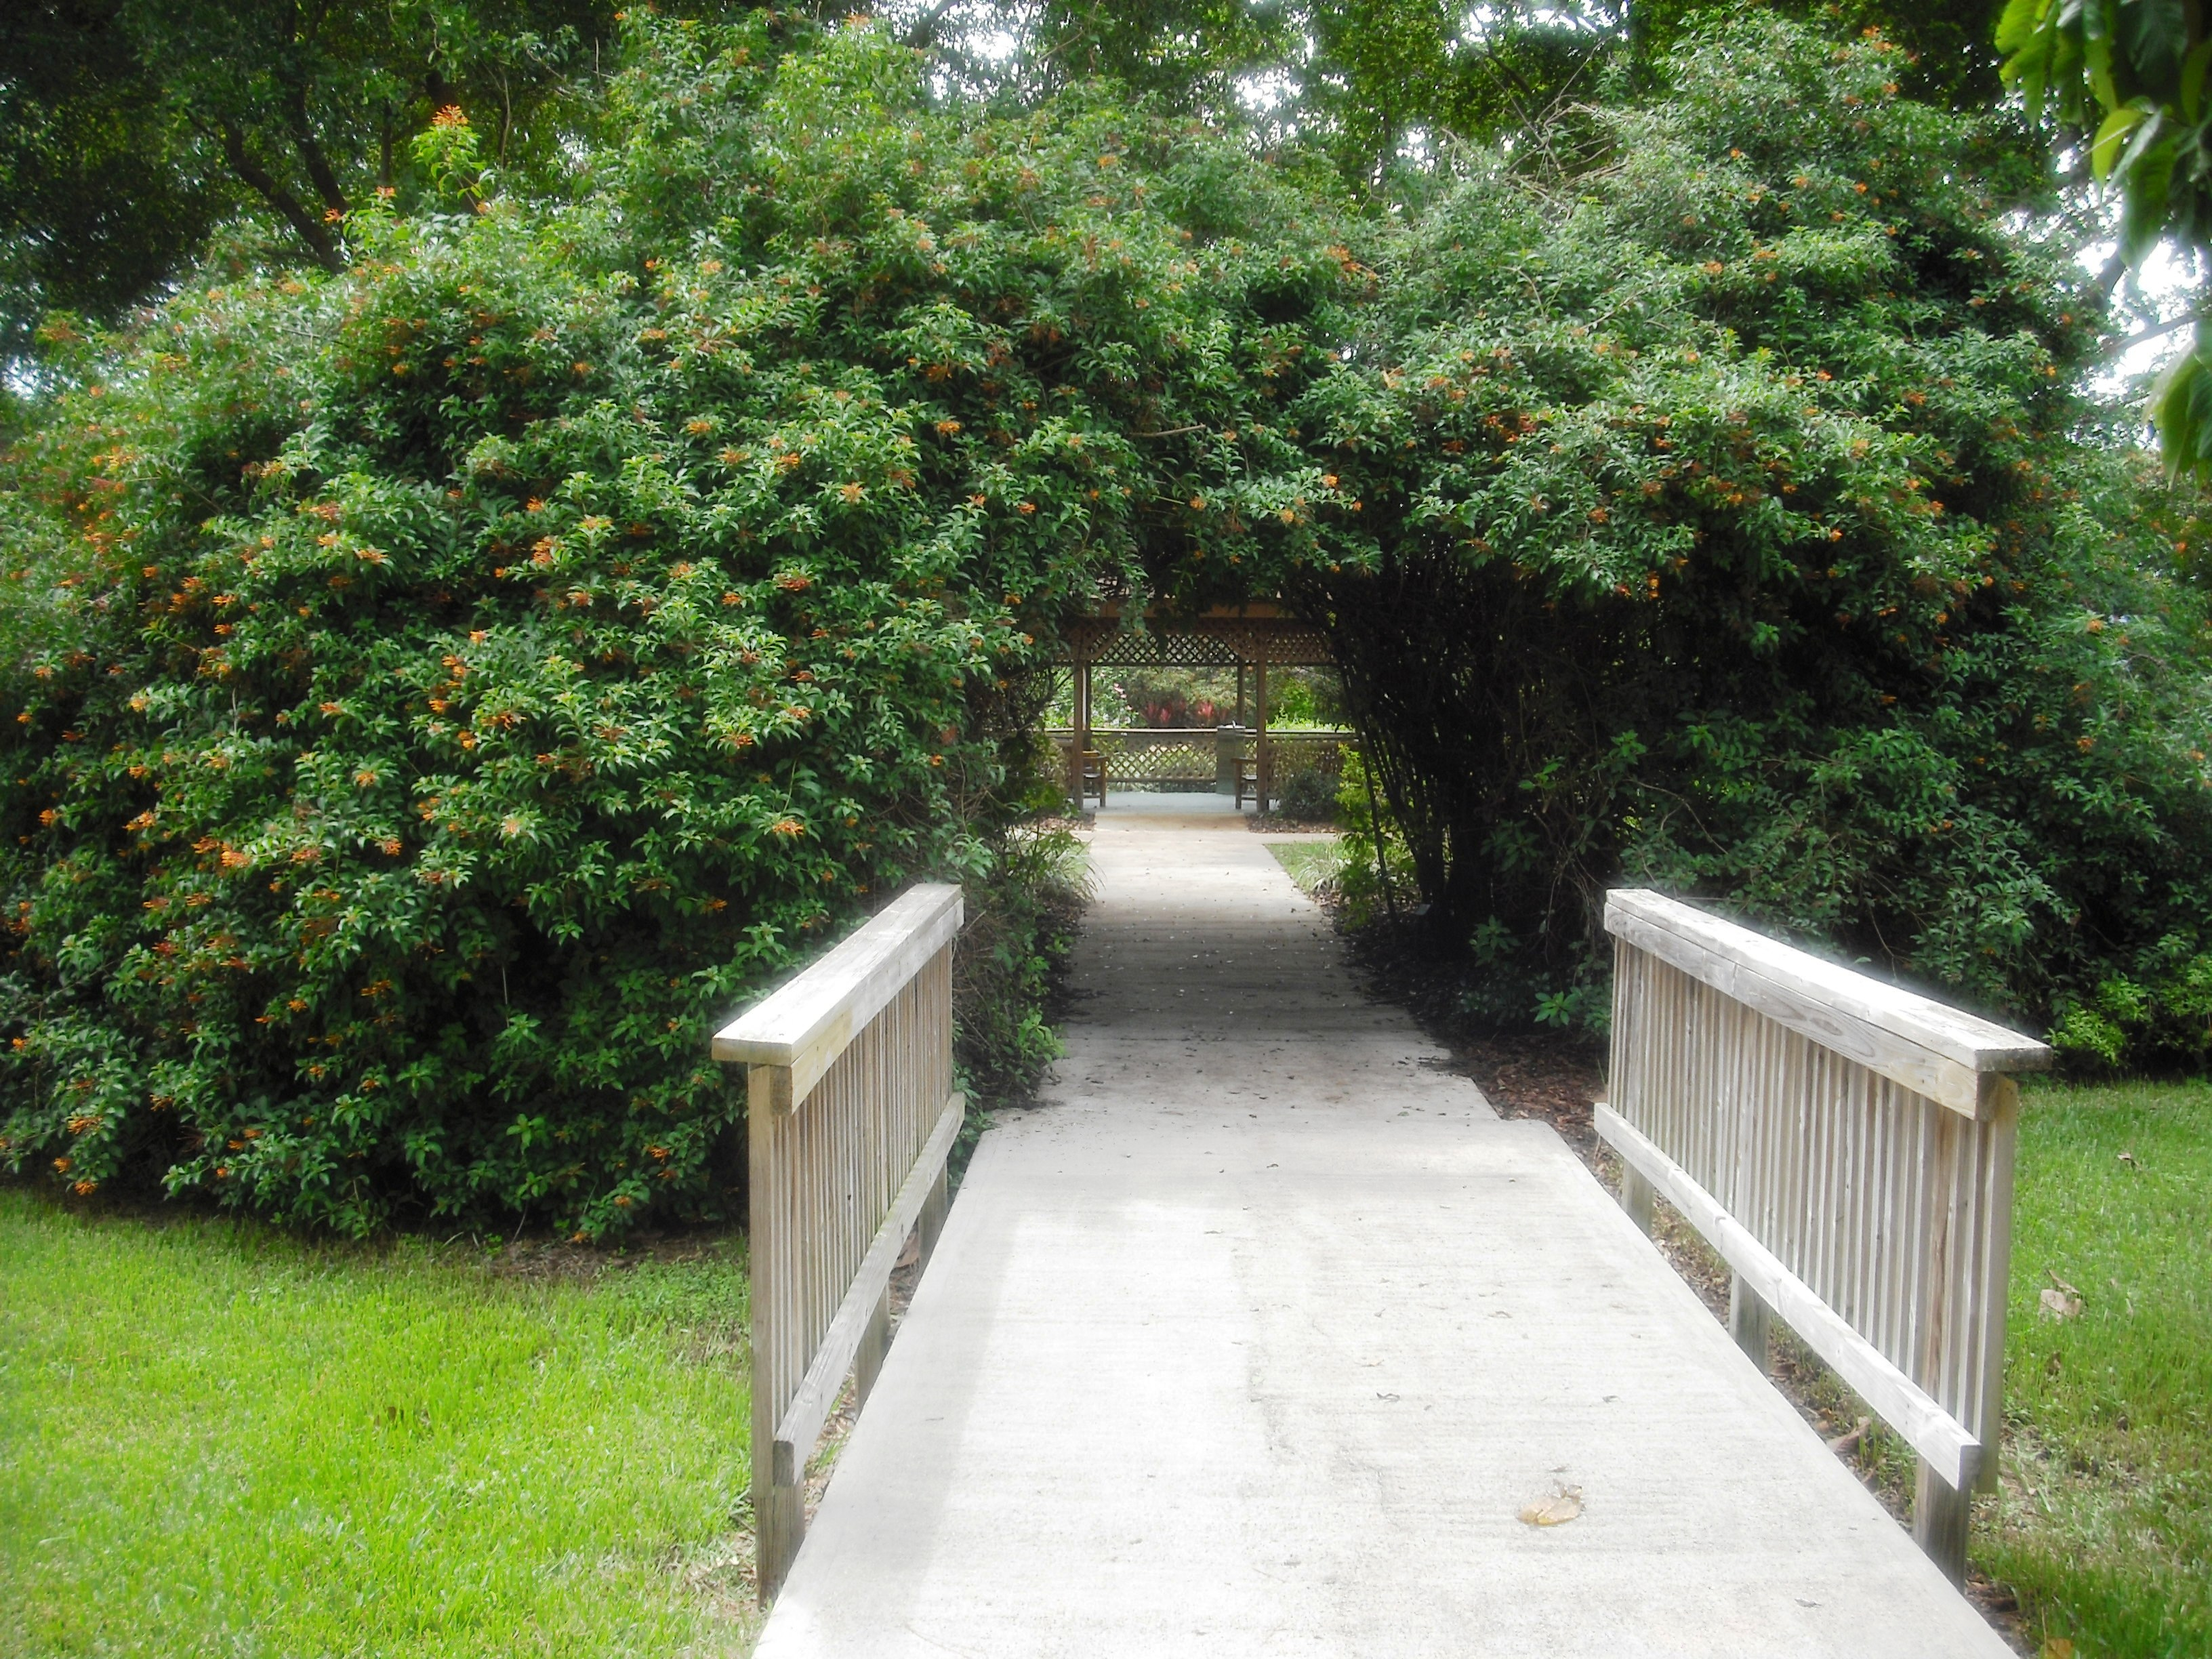 Mounts botanical garden west palm beach parks - West palm beach botanical garden ...